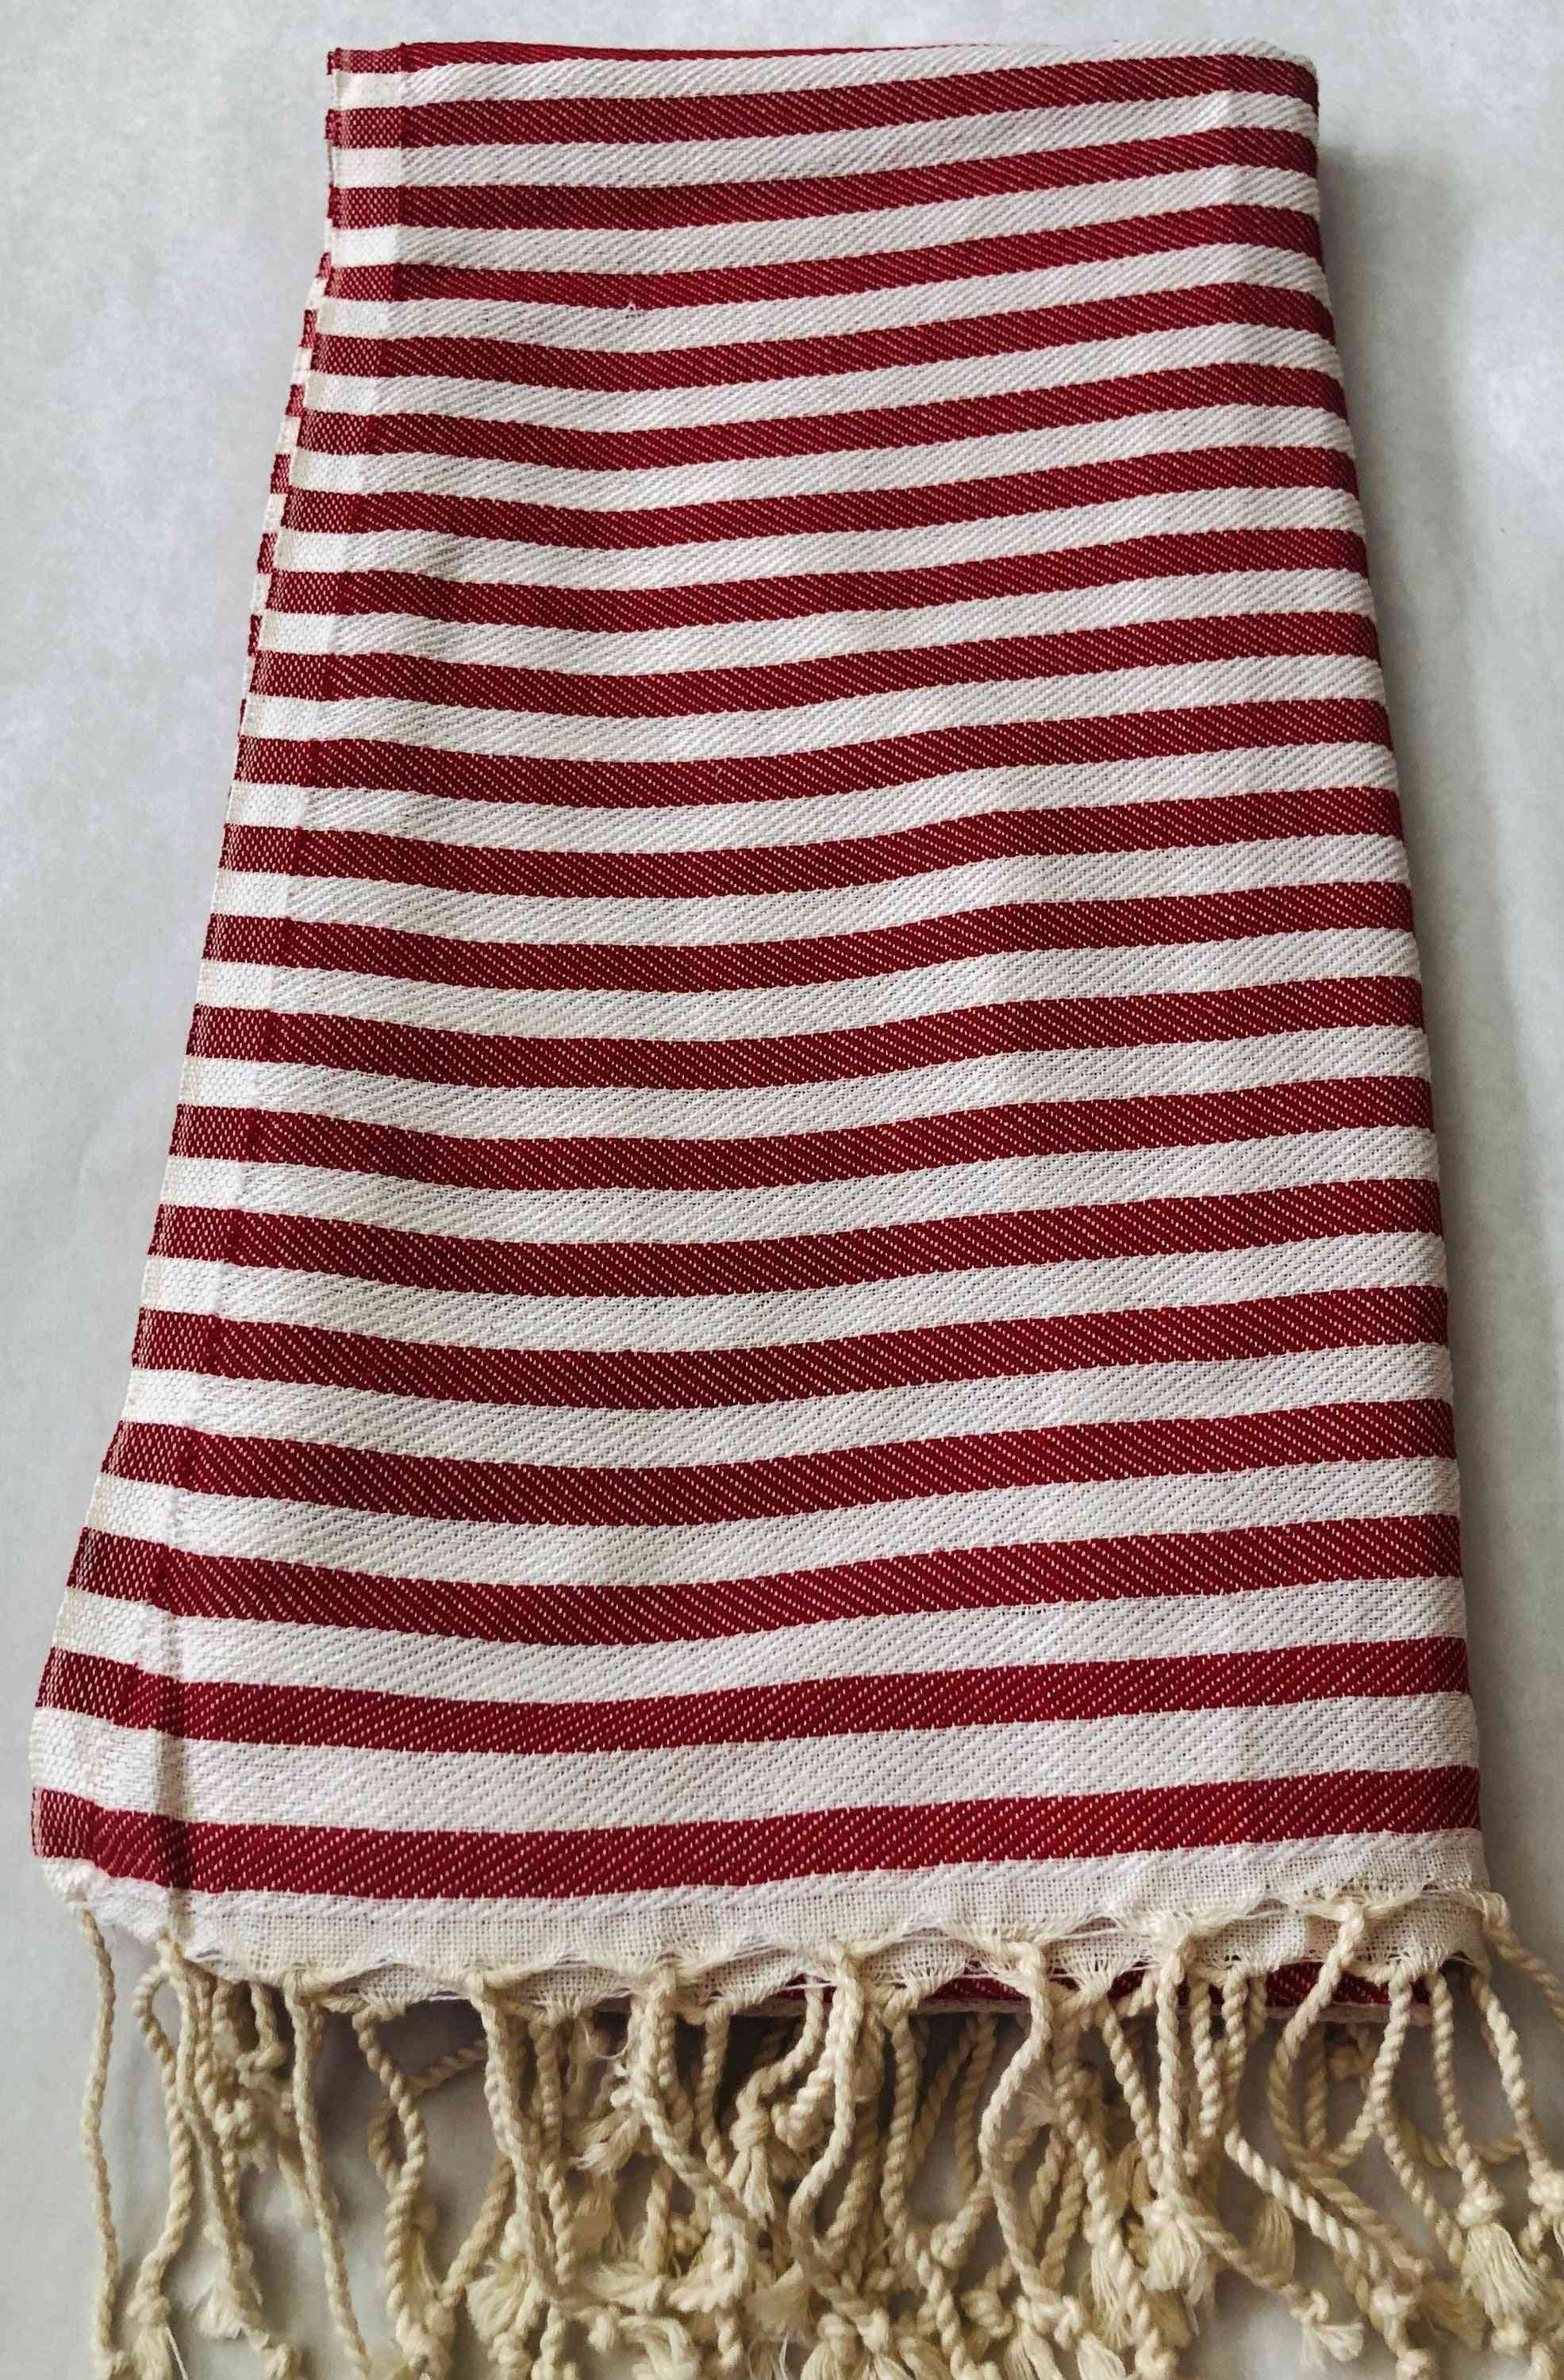 Red Striped Smart Towel - 100% Natural Cotton, Turkish Towel